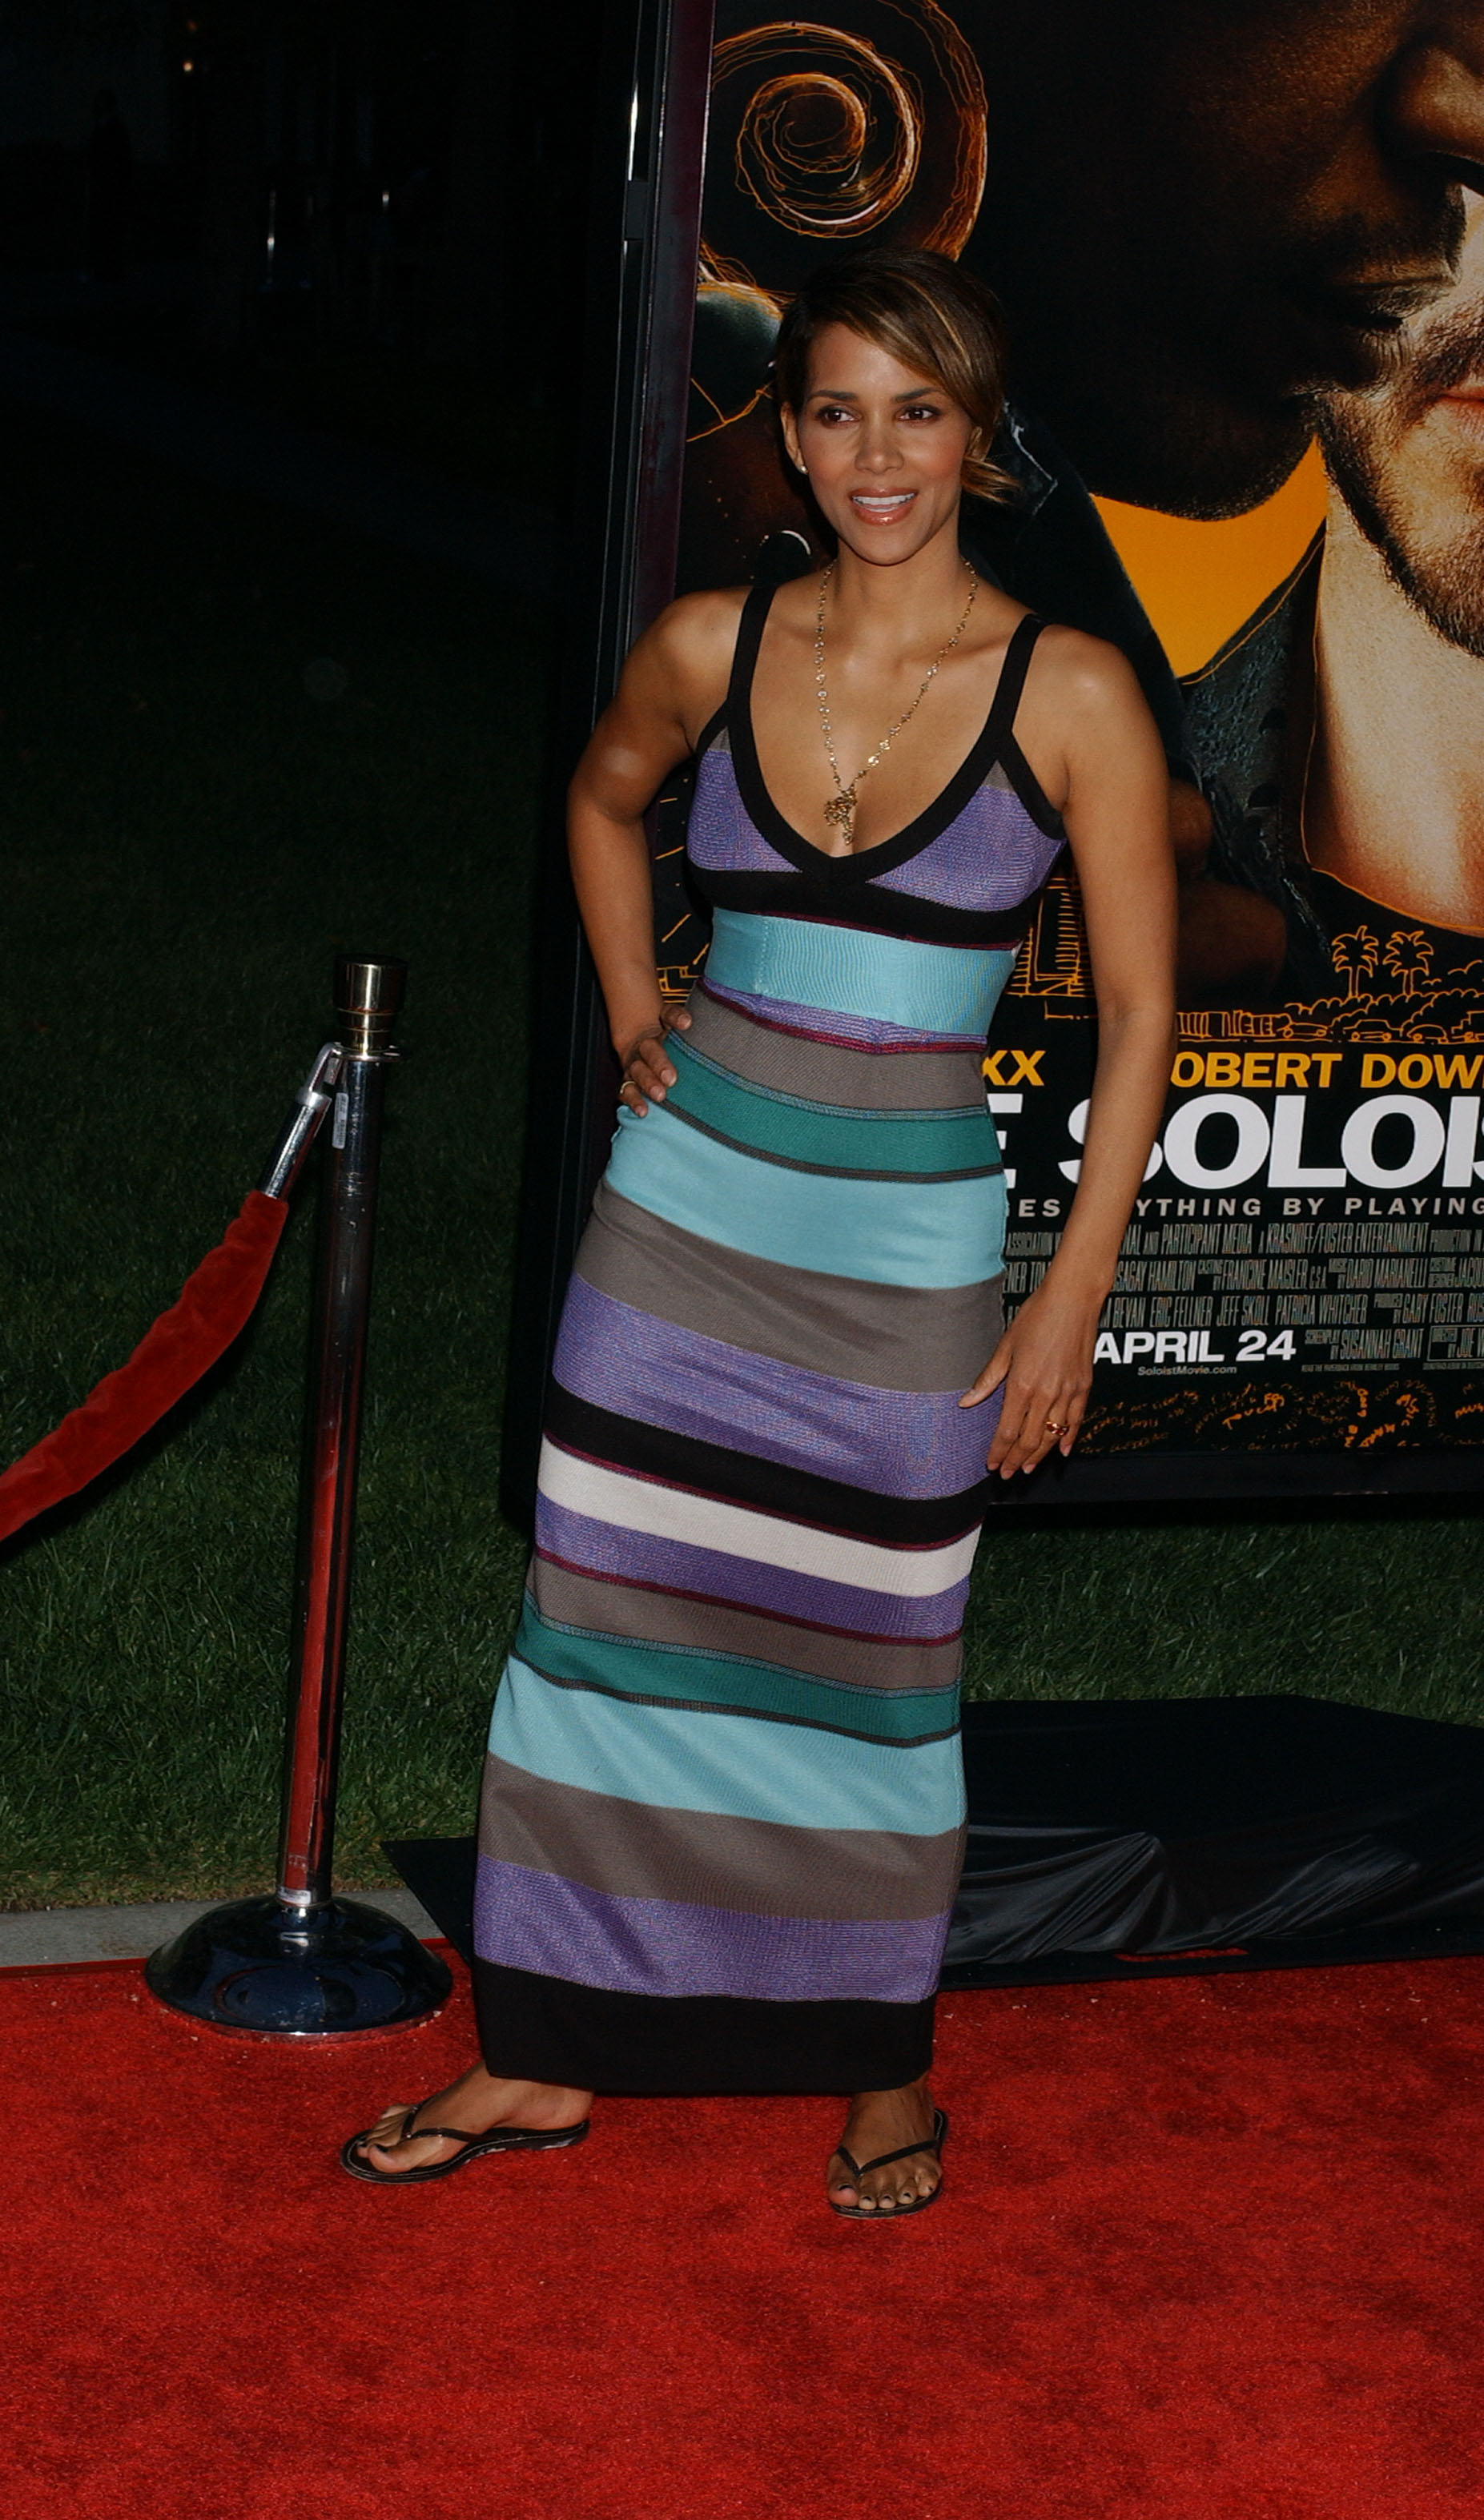 65777_Halle_Berry_The_Soloist_premiere_in_Los_Angeles_54_122_106lo.jpg